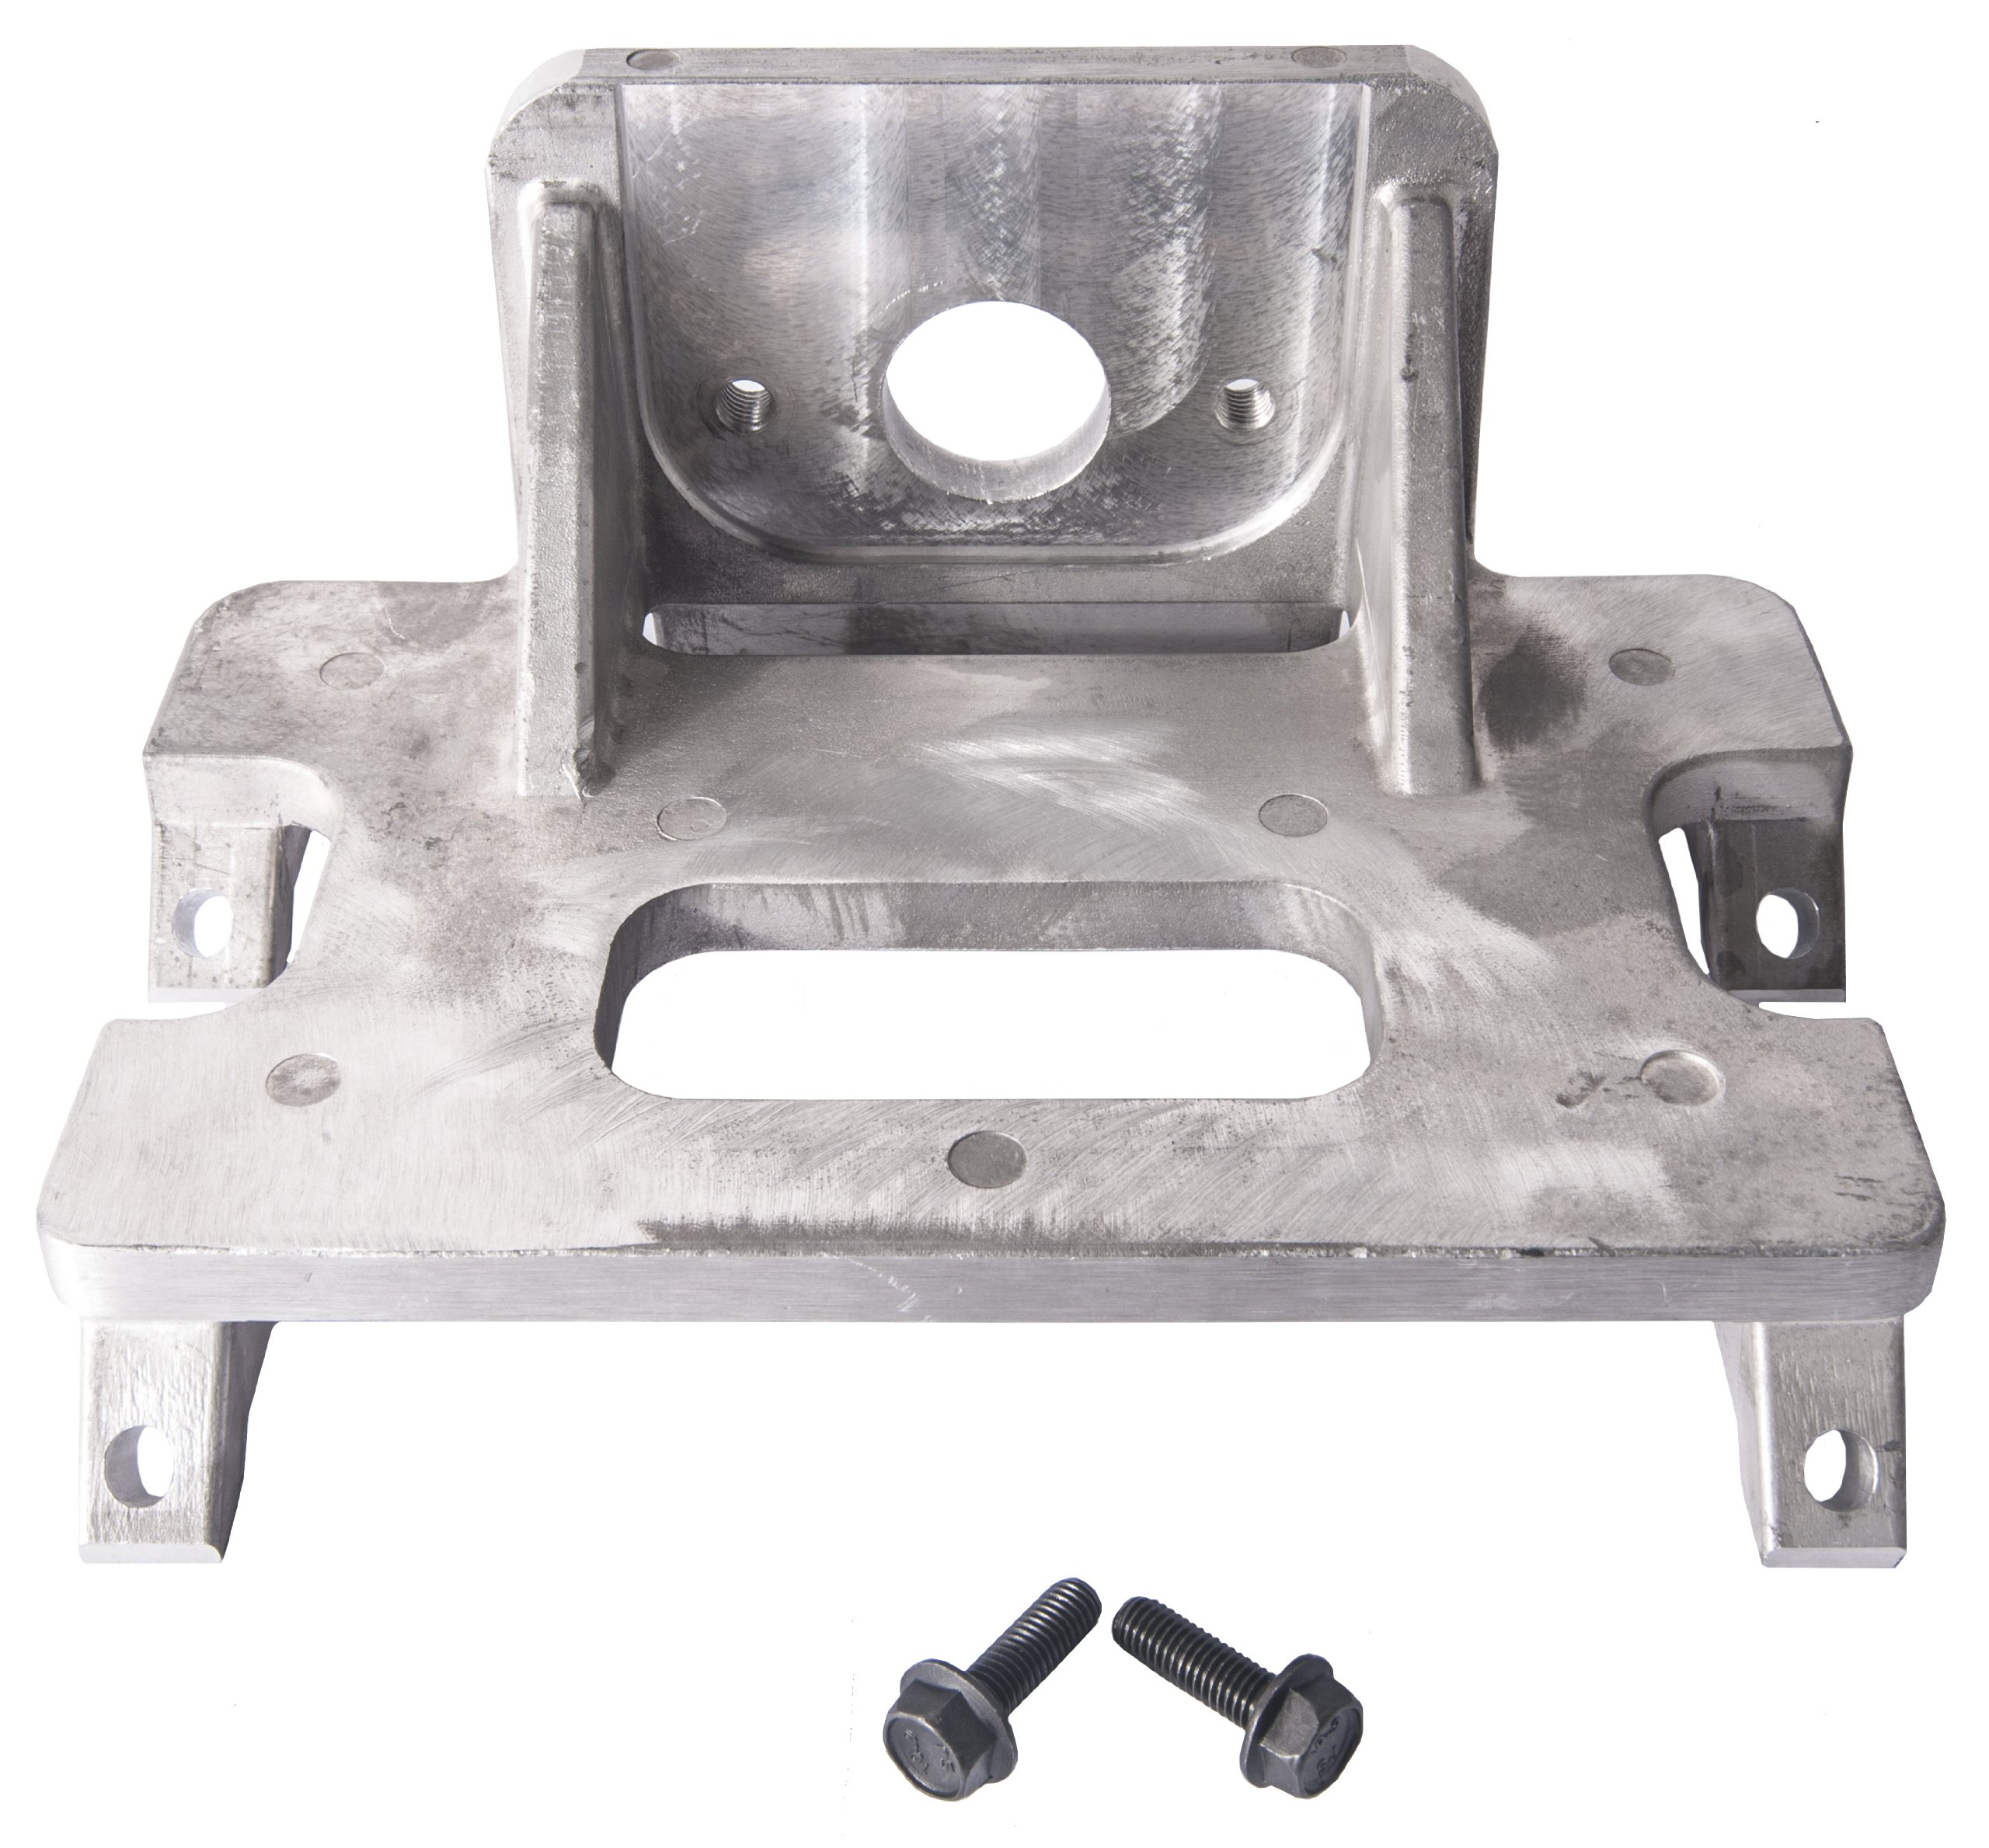 Sea-Doo IS Alignment Plate GTX /RXT /Wake Pro 529036197 2009 2010 2011 2012